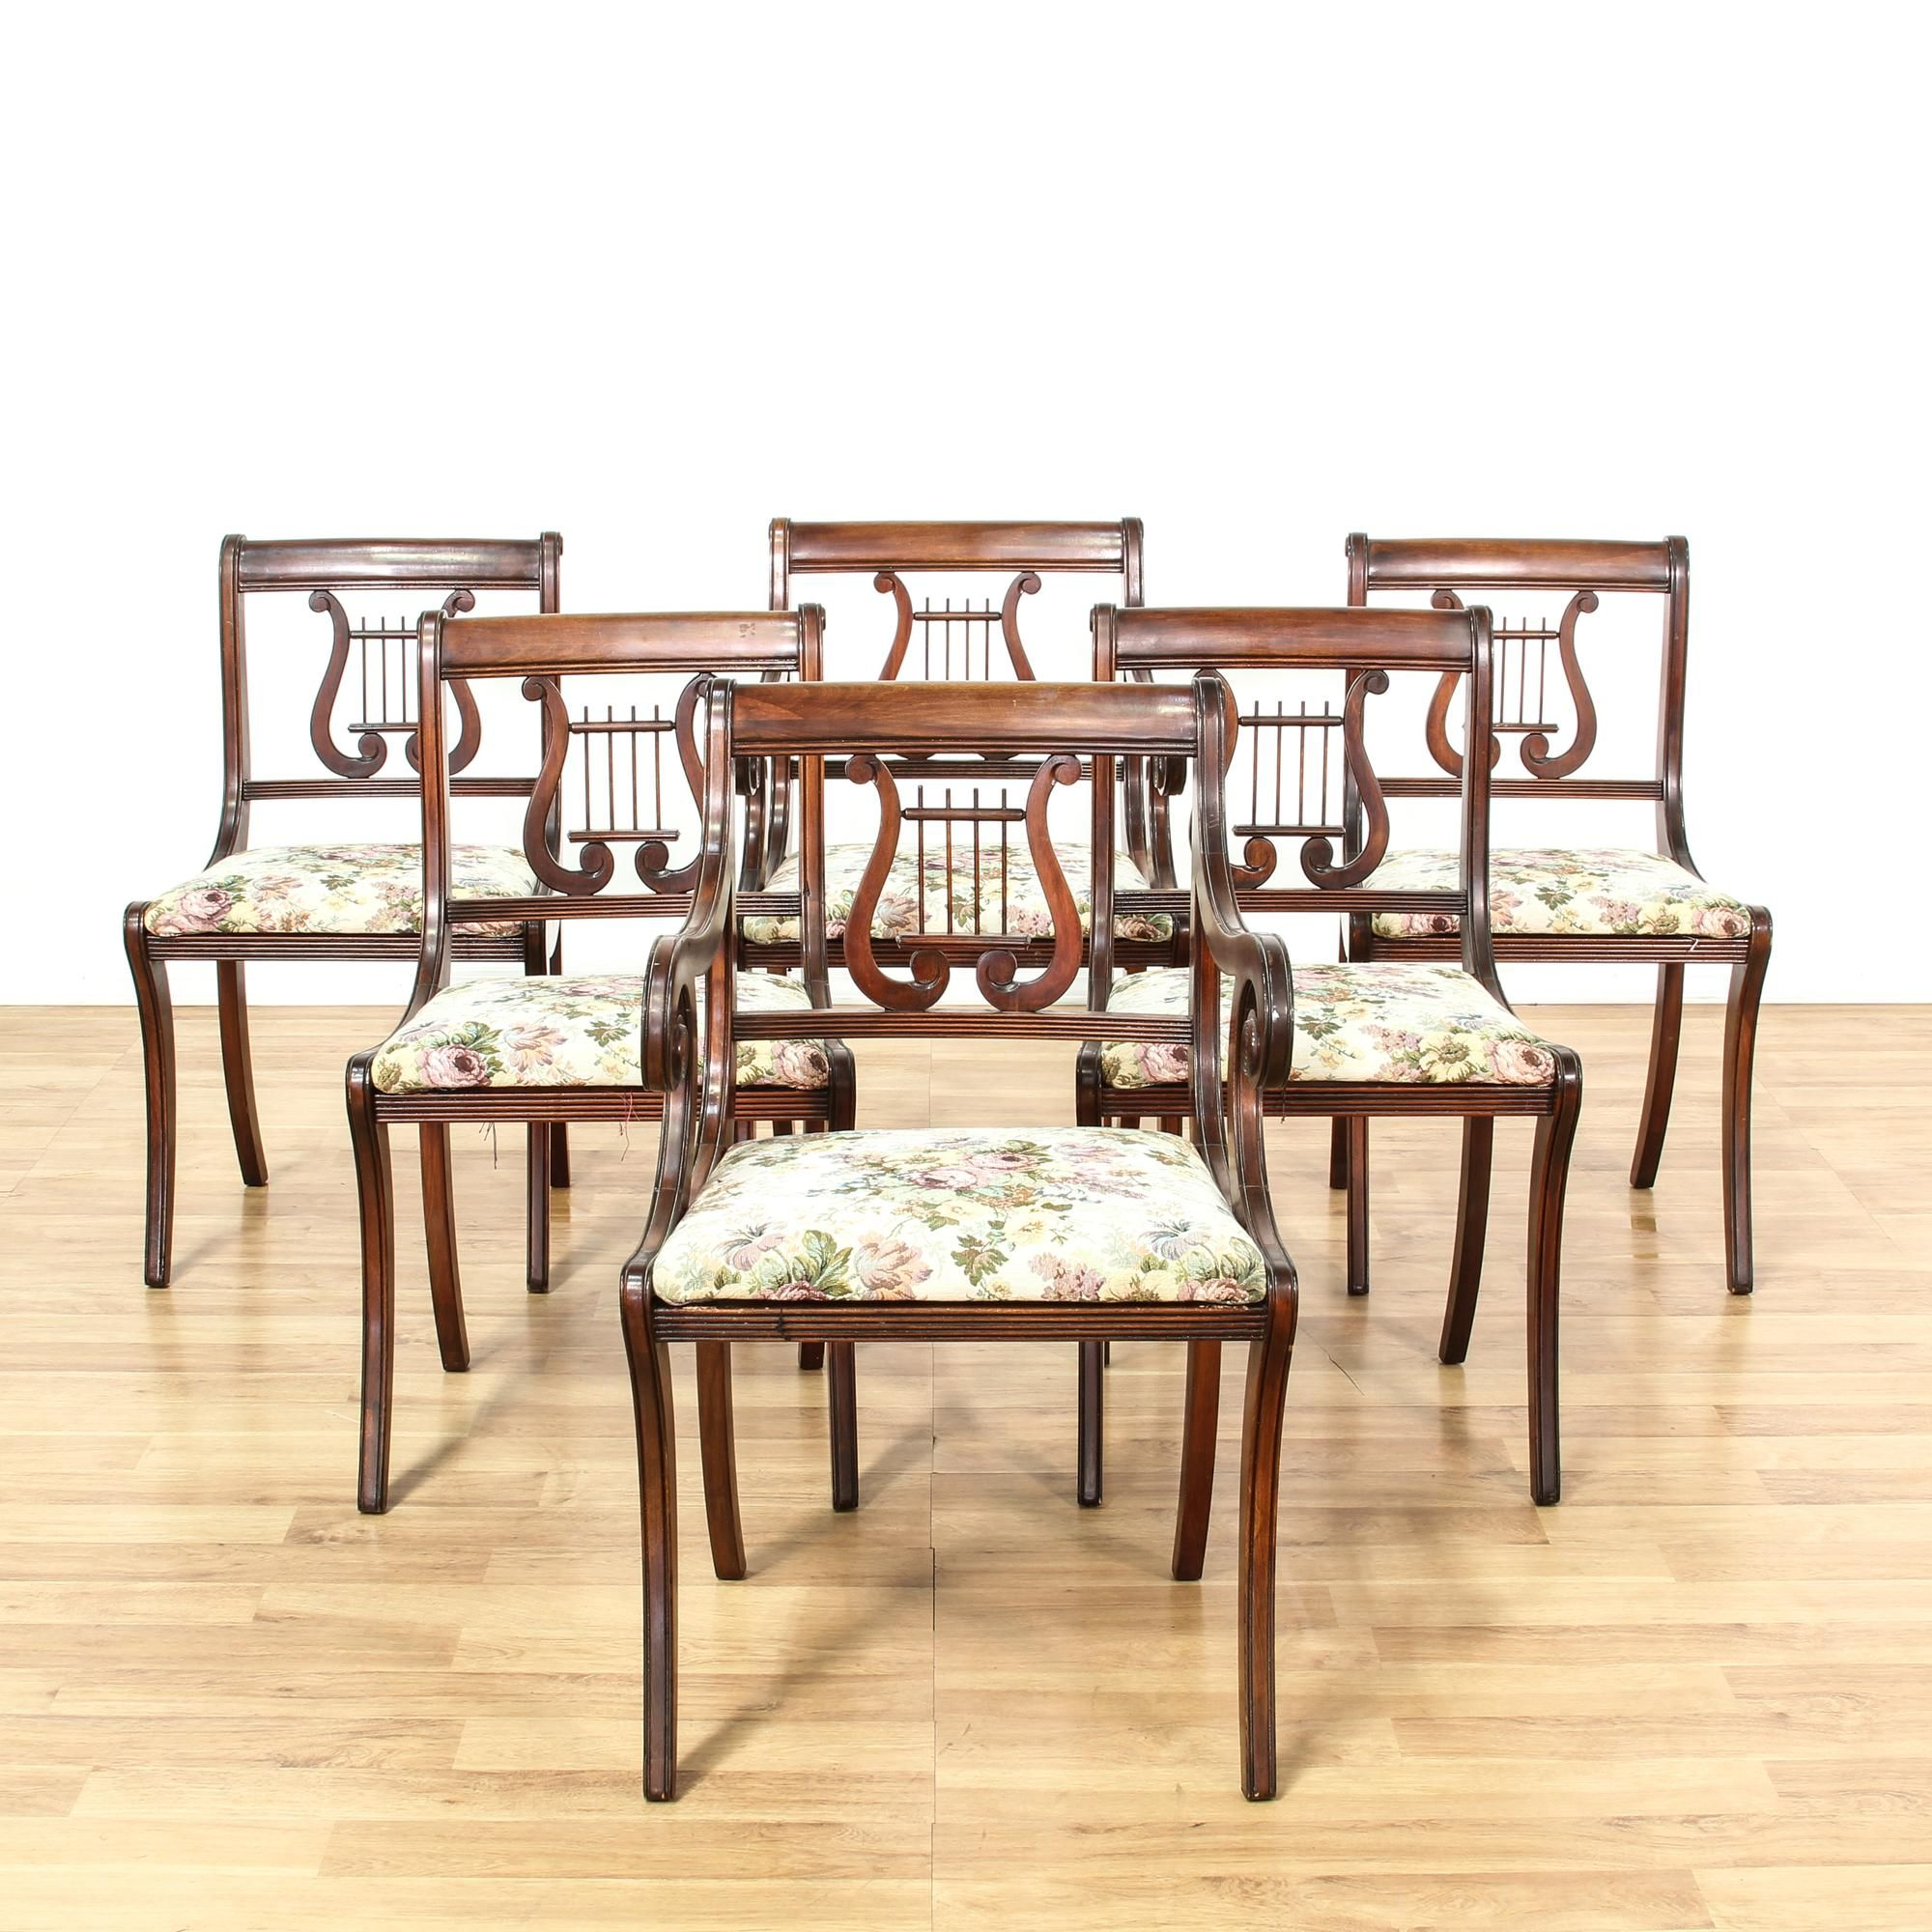 This set of 6 Duncan Phyfe dining chairs are featured in a solid